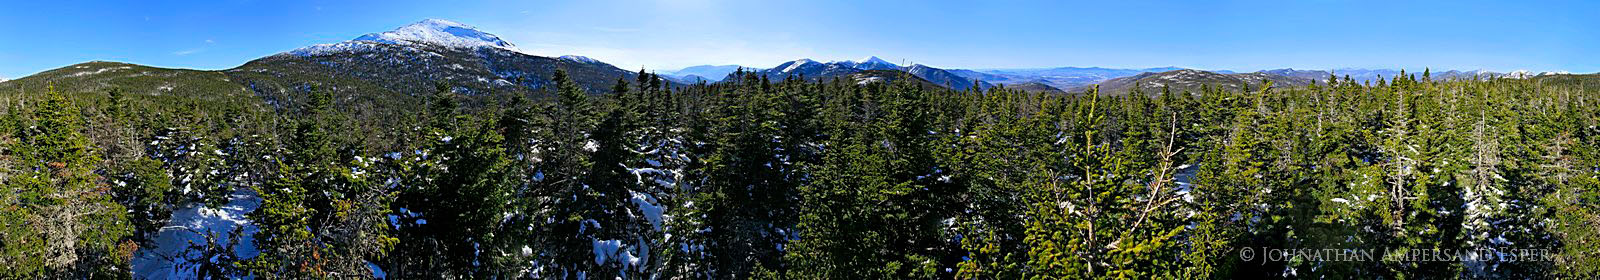 360 degree,panorama,Mt Marcy,trail,summit,Adirondack,High Peaks,winter,treetop, photo